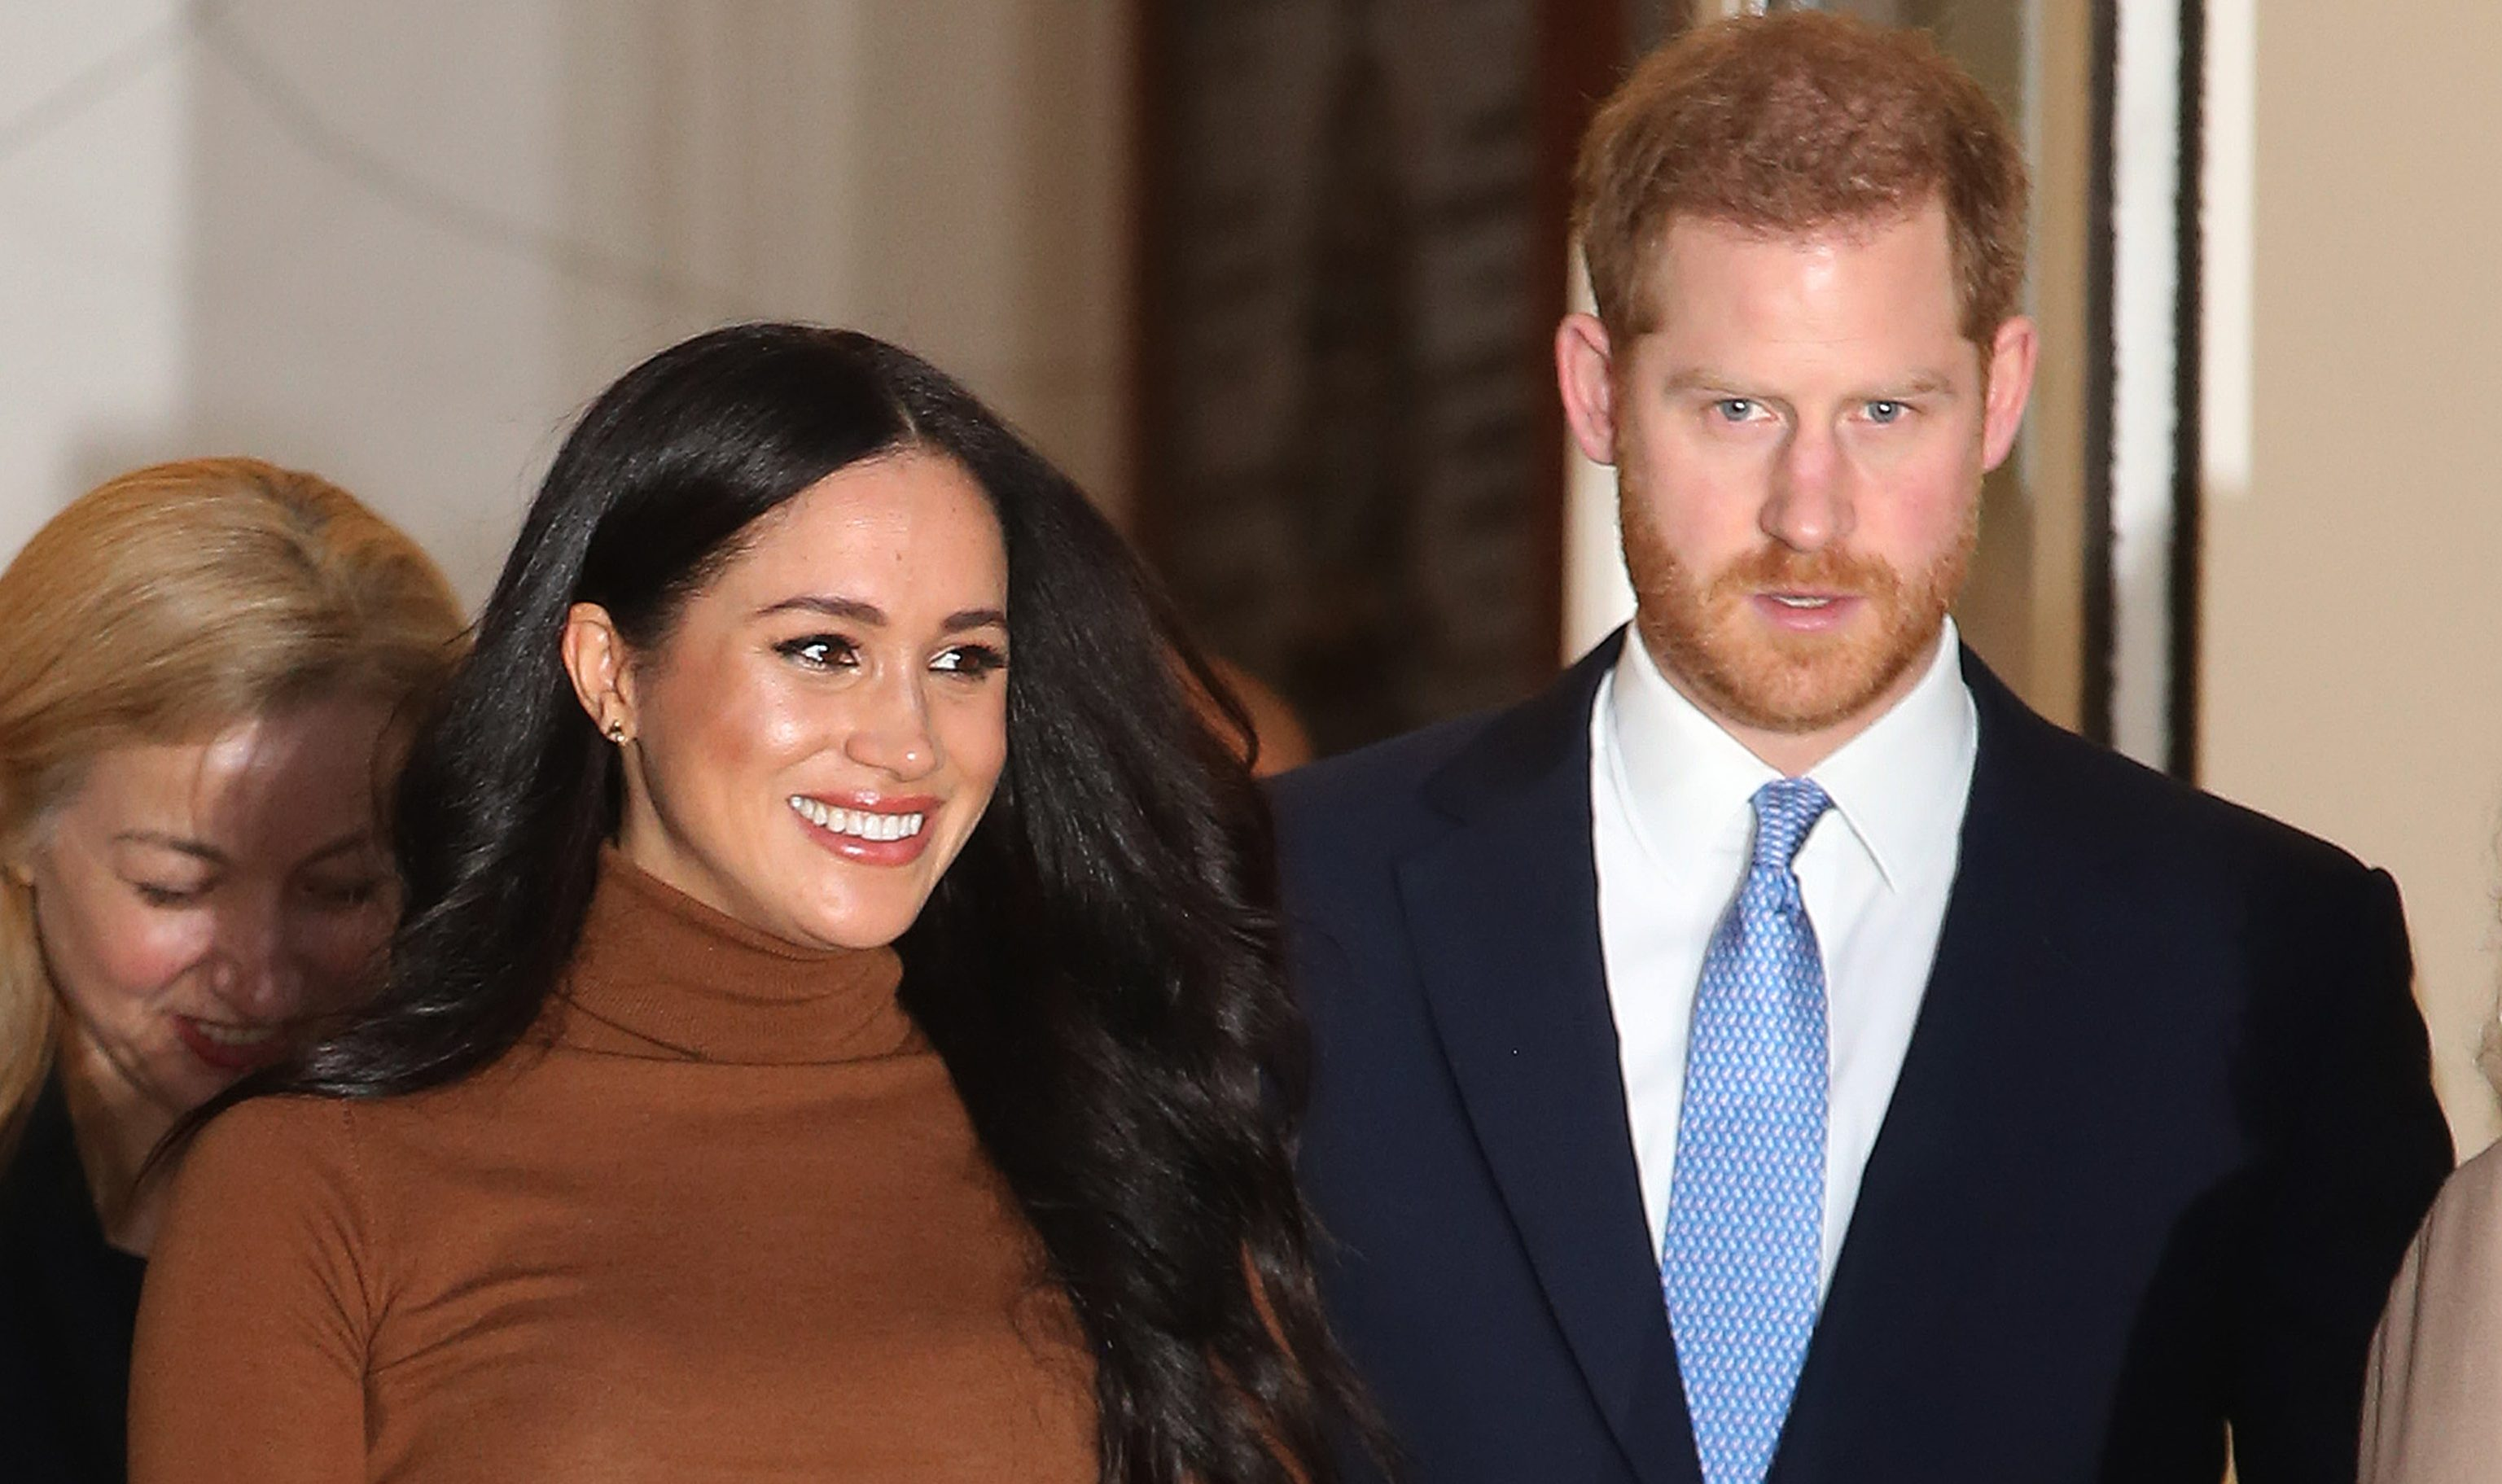 Harry and Meghan 'face legal battle' as their attempt to trademark Sussex Royal is blocked